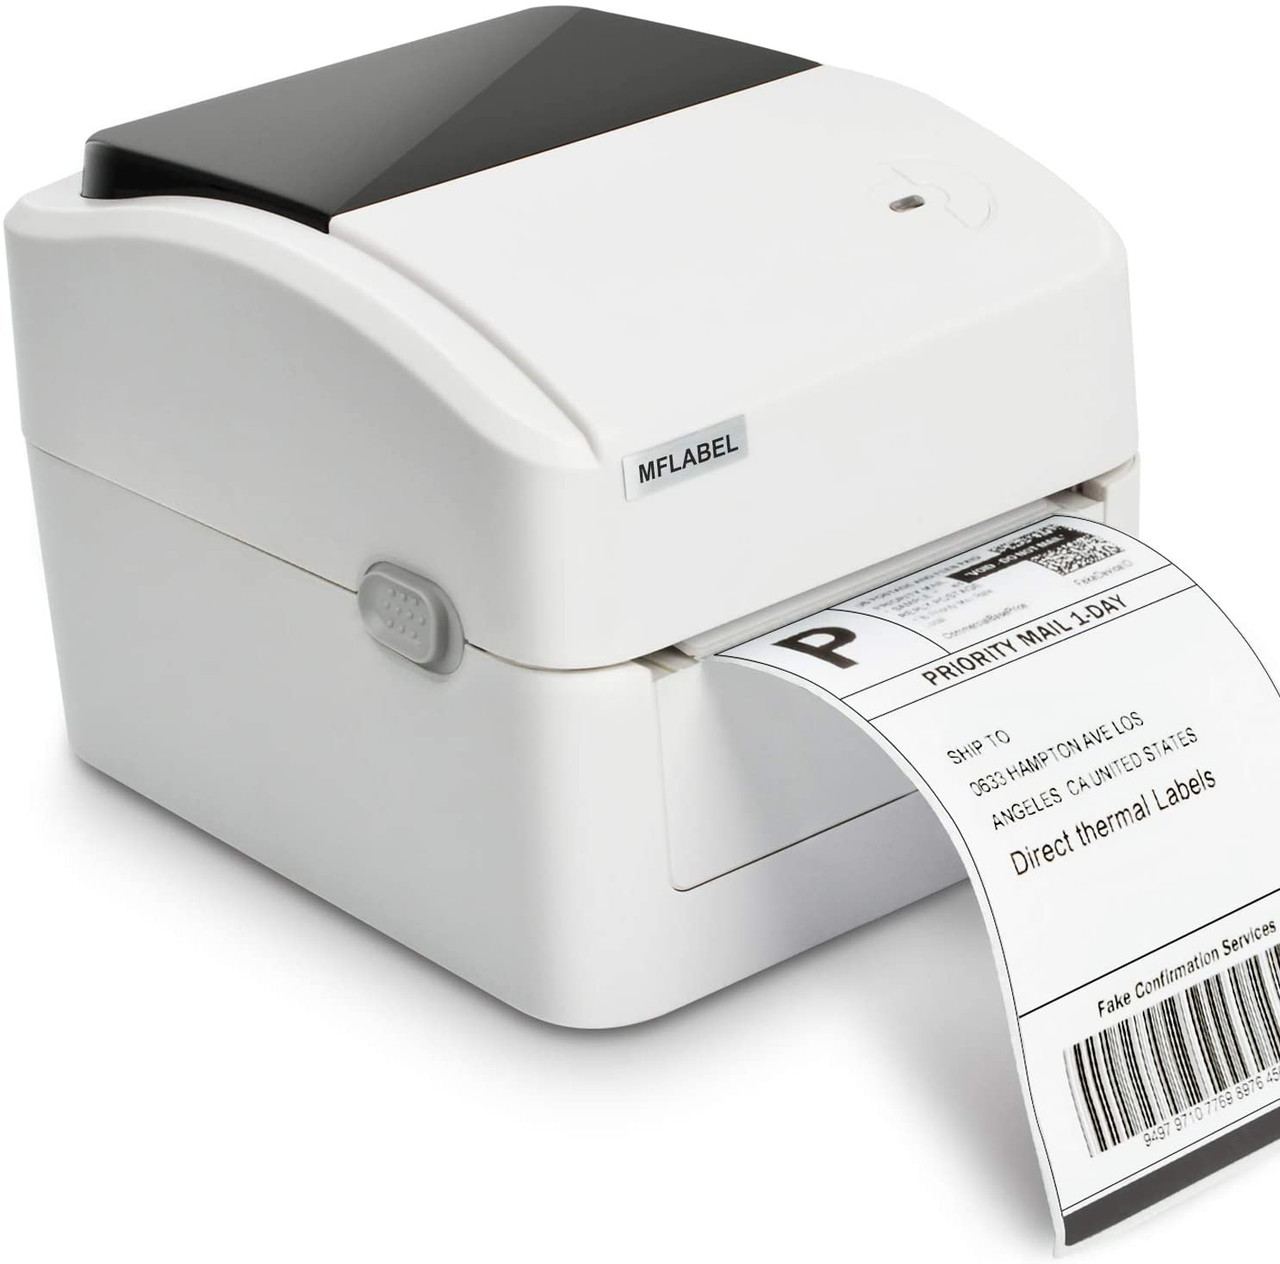 Mflabel 4x6 Direct Thermal Printer Commercial High Speed Label Writer Compatibel With Amazon Ebay Mflabel